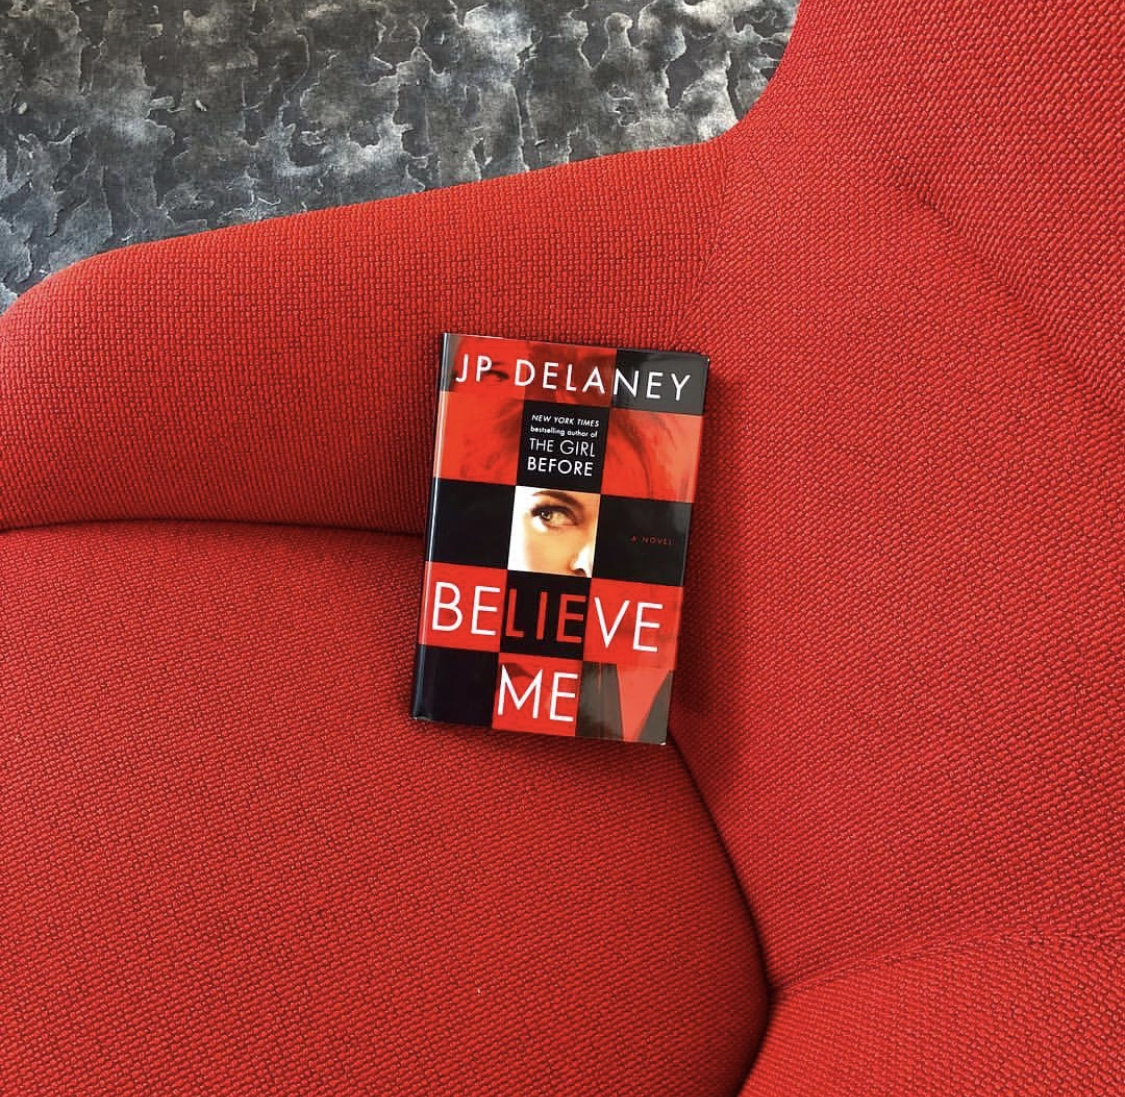 I really enjoyed this! Believe Me has such a unique premise- Clare is a British woman who has come to New York to pursue acting. She can't work, since she's here on a student visa, and she hasn't gotten her big break yet so shes pursuing other options. She works for a law firm in entrapment- she gets hired to try and get cheating husbands to sleep with her to get evidence for the wives. She's working on her acting skills and getting by- until one of the clients turns up dead the next morning.  The book takes many turns and I never really knew what was real and what was an act. I really loved the author's last book, The Girl Before, and I think I enjoyed this even more. Warning: this is one dark book so if you're sensitive to violence, you might want to skip it. From this depraved reader, it gets 4.5 stars.